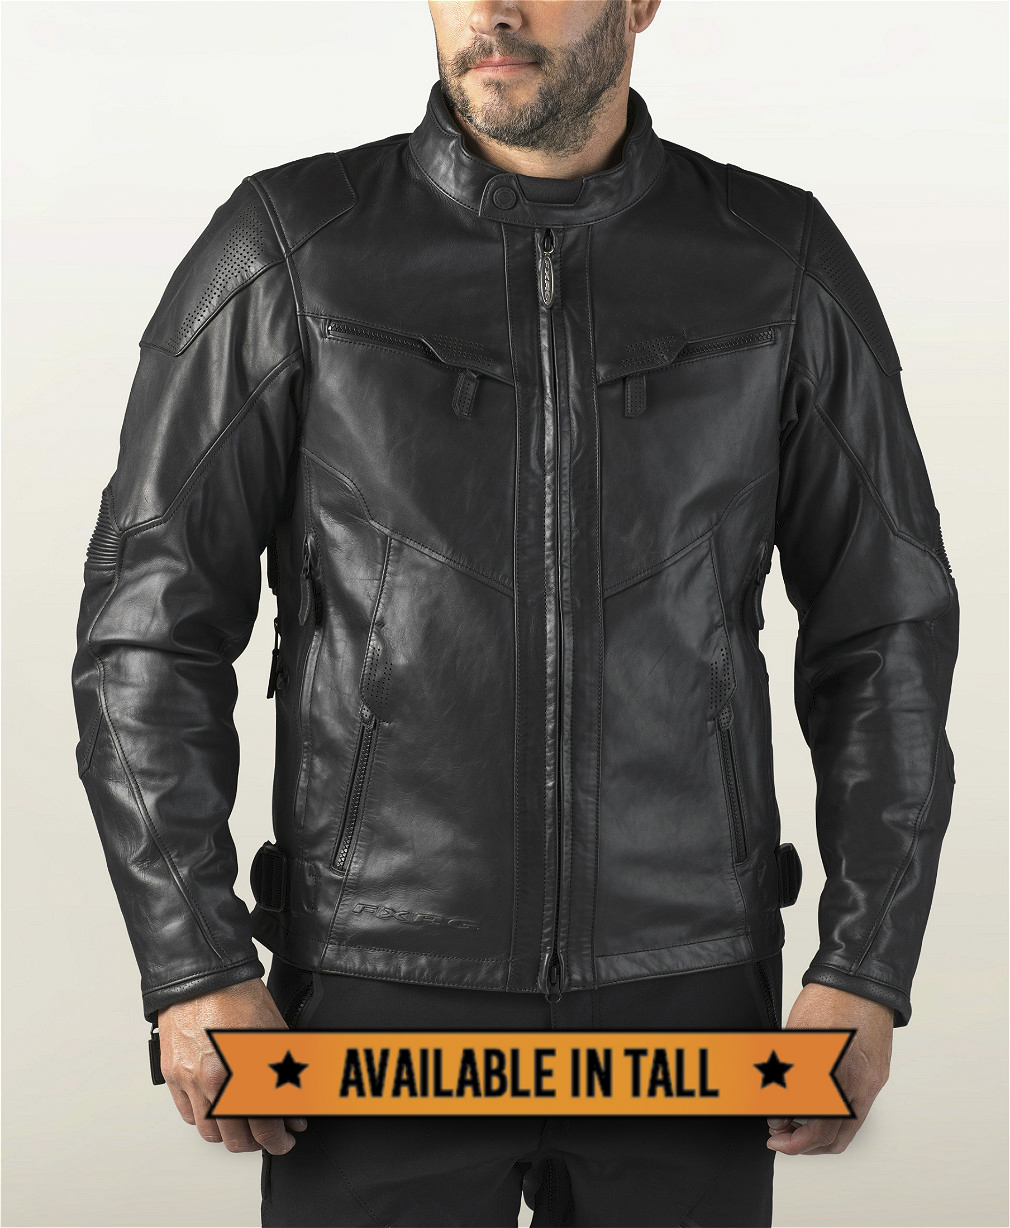 Harley-Davidson® Men's FXRG® Waterproof Leather Jacket | Triple Vent System™ | CoolCore® Technology